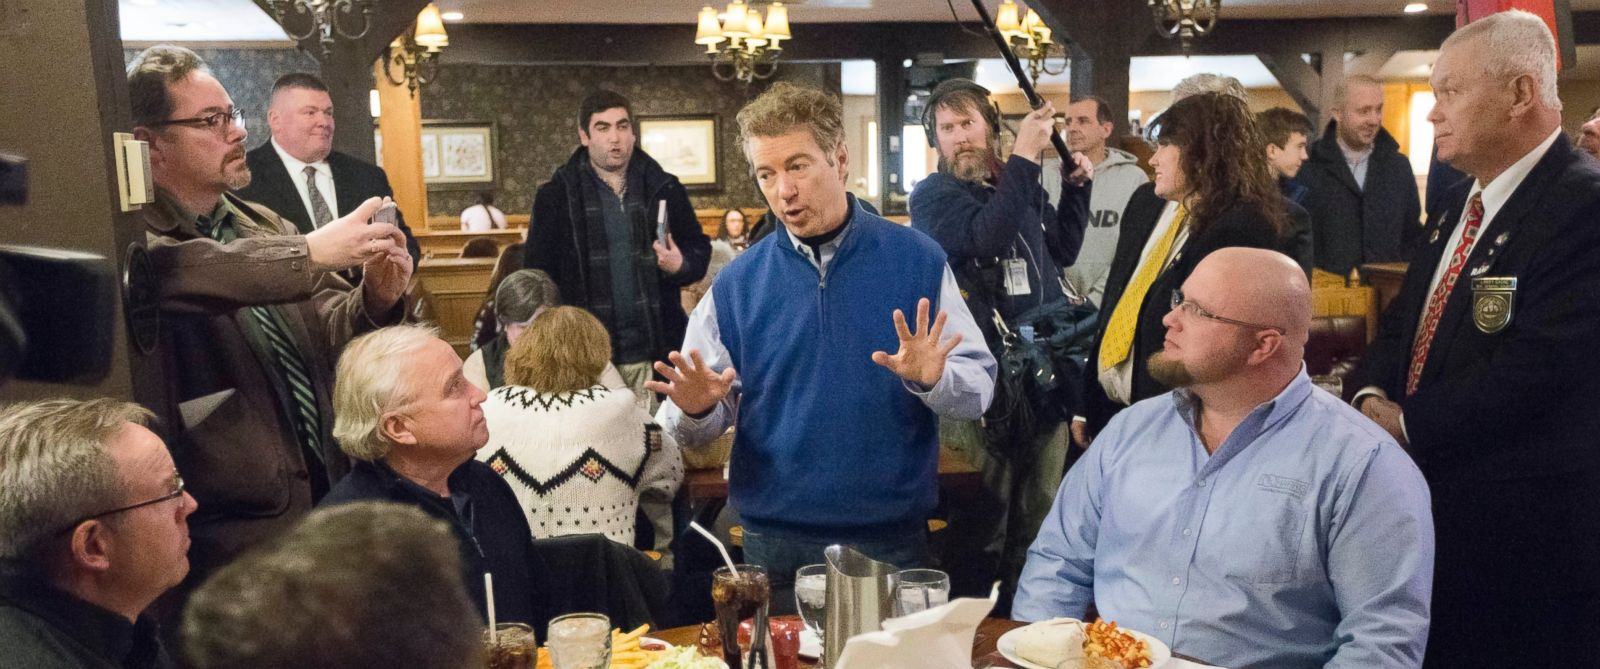 PHOTO: Sen. Rand Paul, R-Ky, center, speaks to a table of quests during a campaign stop at the Puritan Backroom restaurant, Jan. 22, 2016, in Manchester.